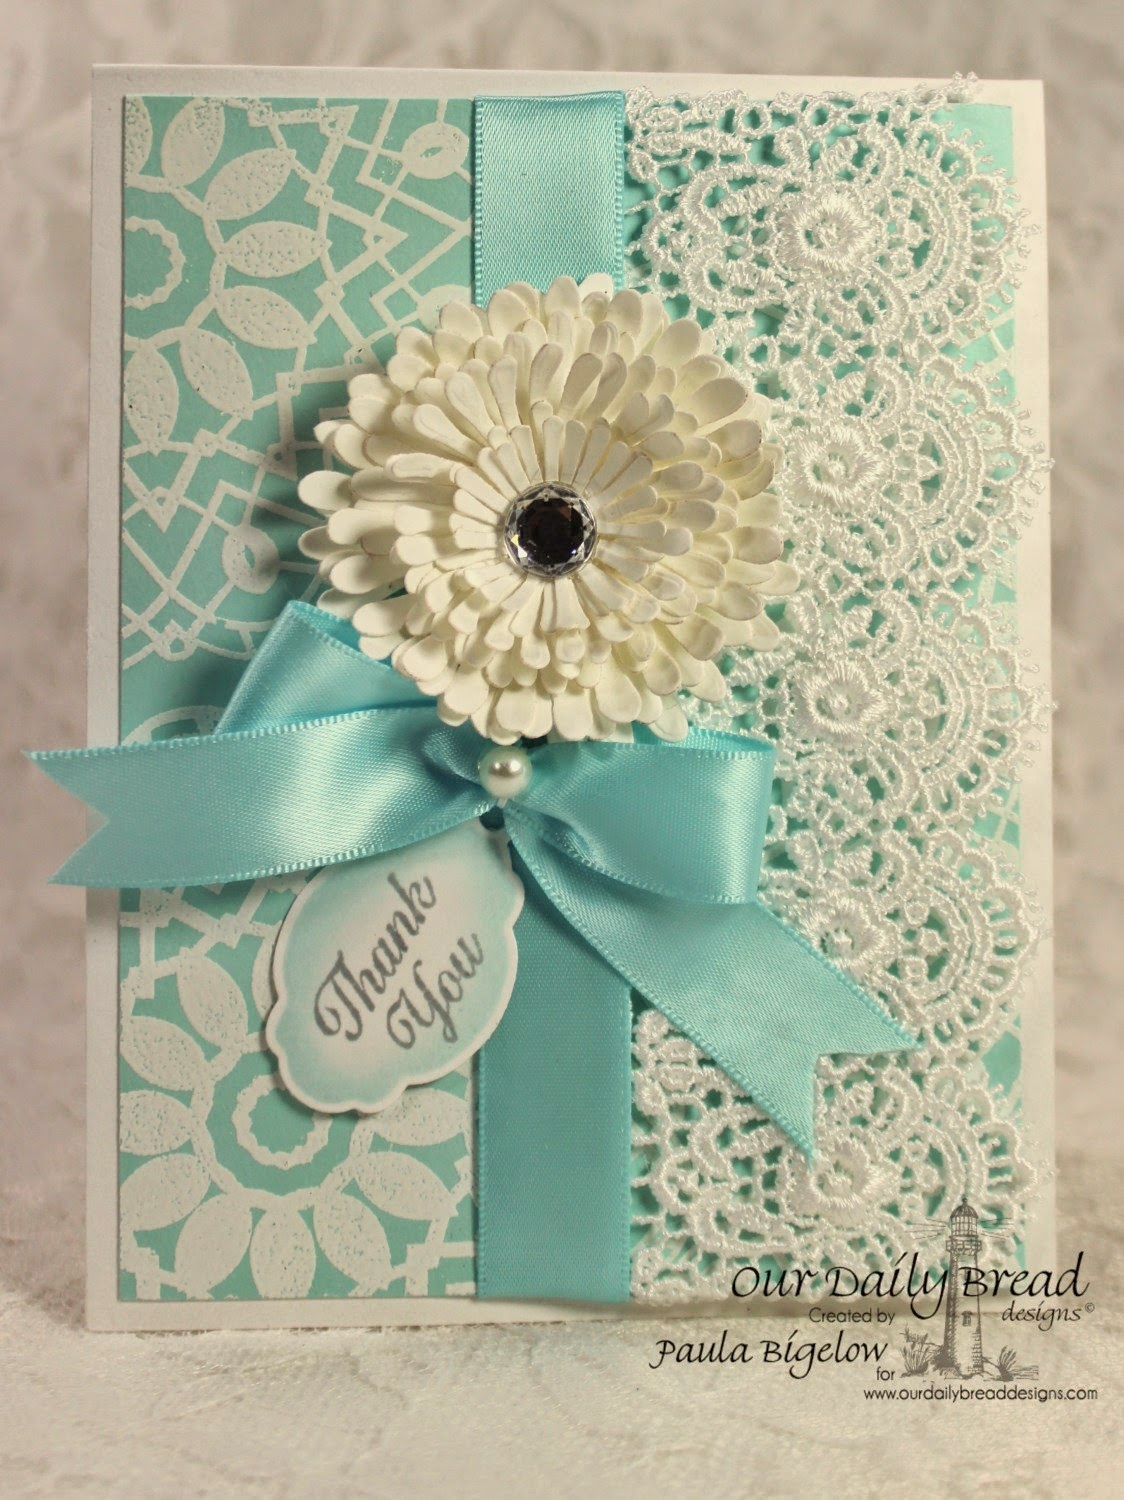 Our Daily Bread Designs, Doily Blessings, Ornate Border Sentiments, Mini Tag Dies, Aster Dies, Designed by Paula Bigelow